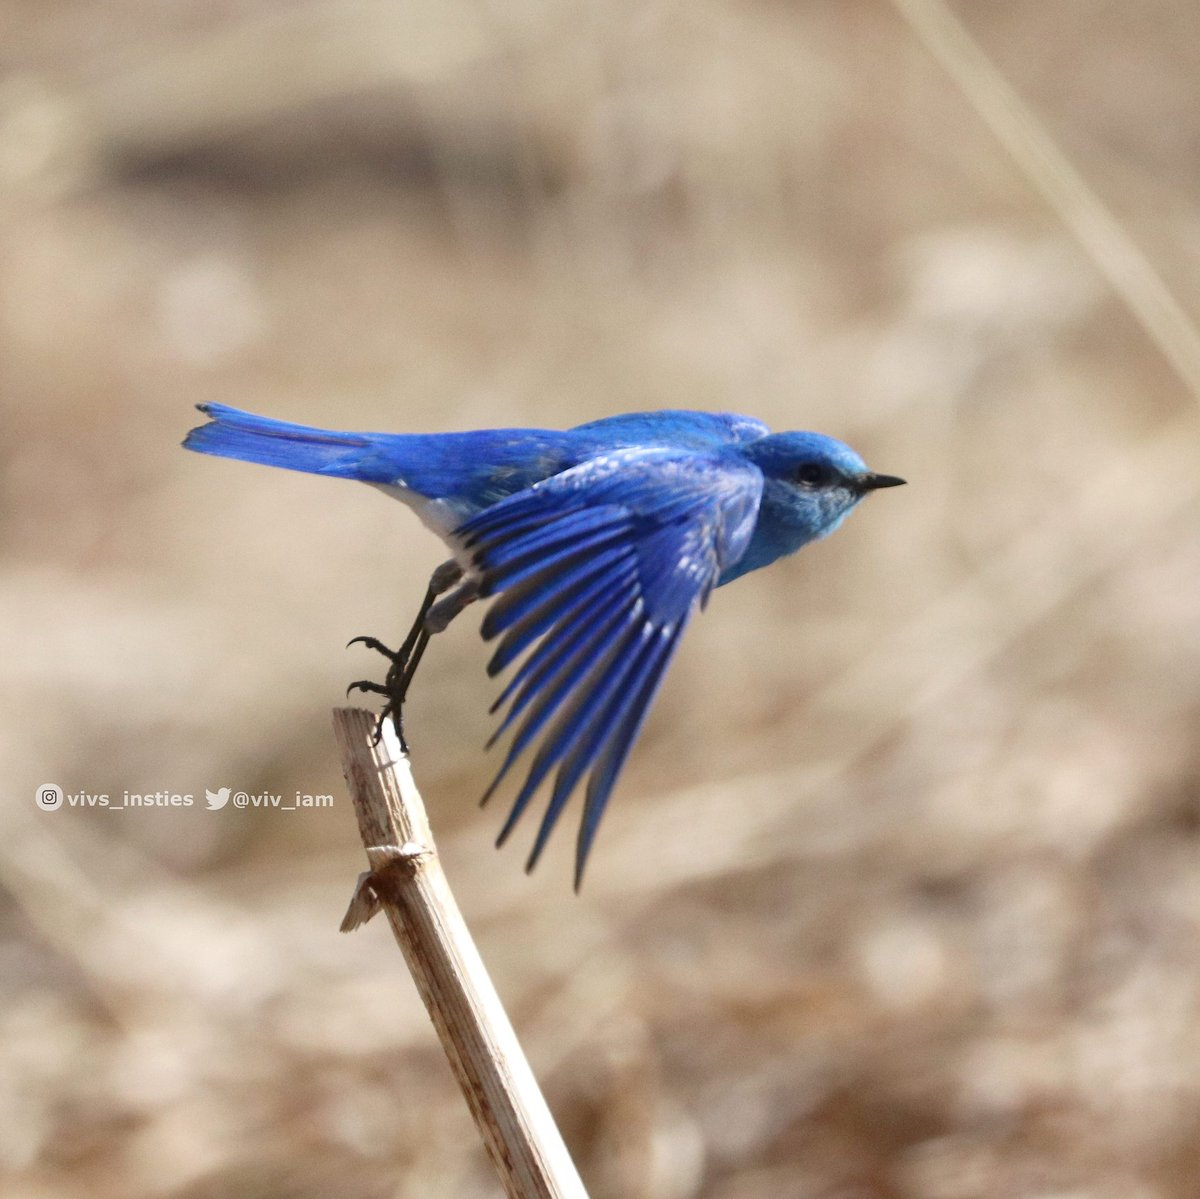 Male mountain Bluebird packing a whole lot of colour with him! #birds #bluebird #birdwatching #natureisawesome